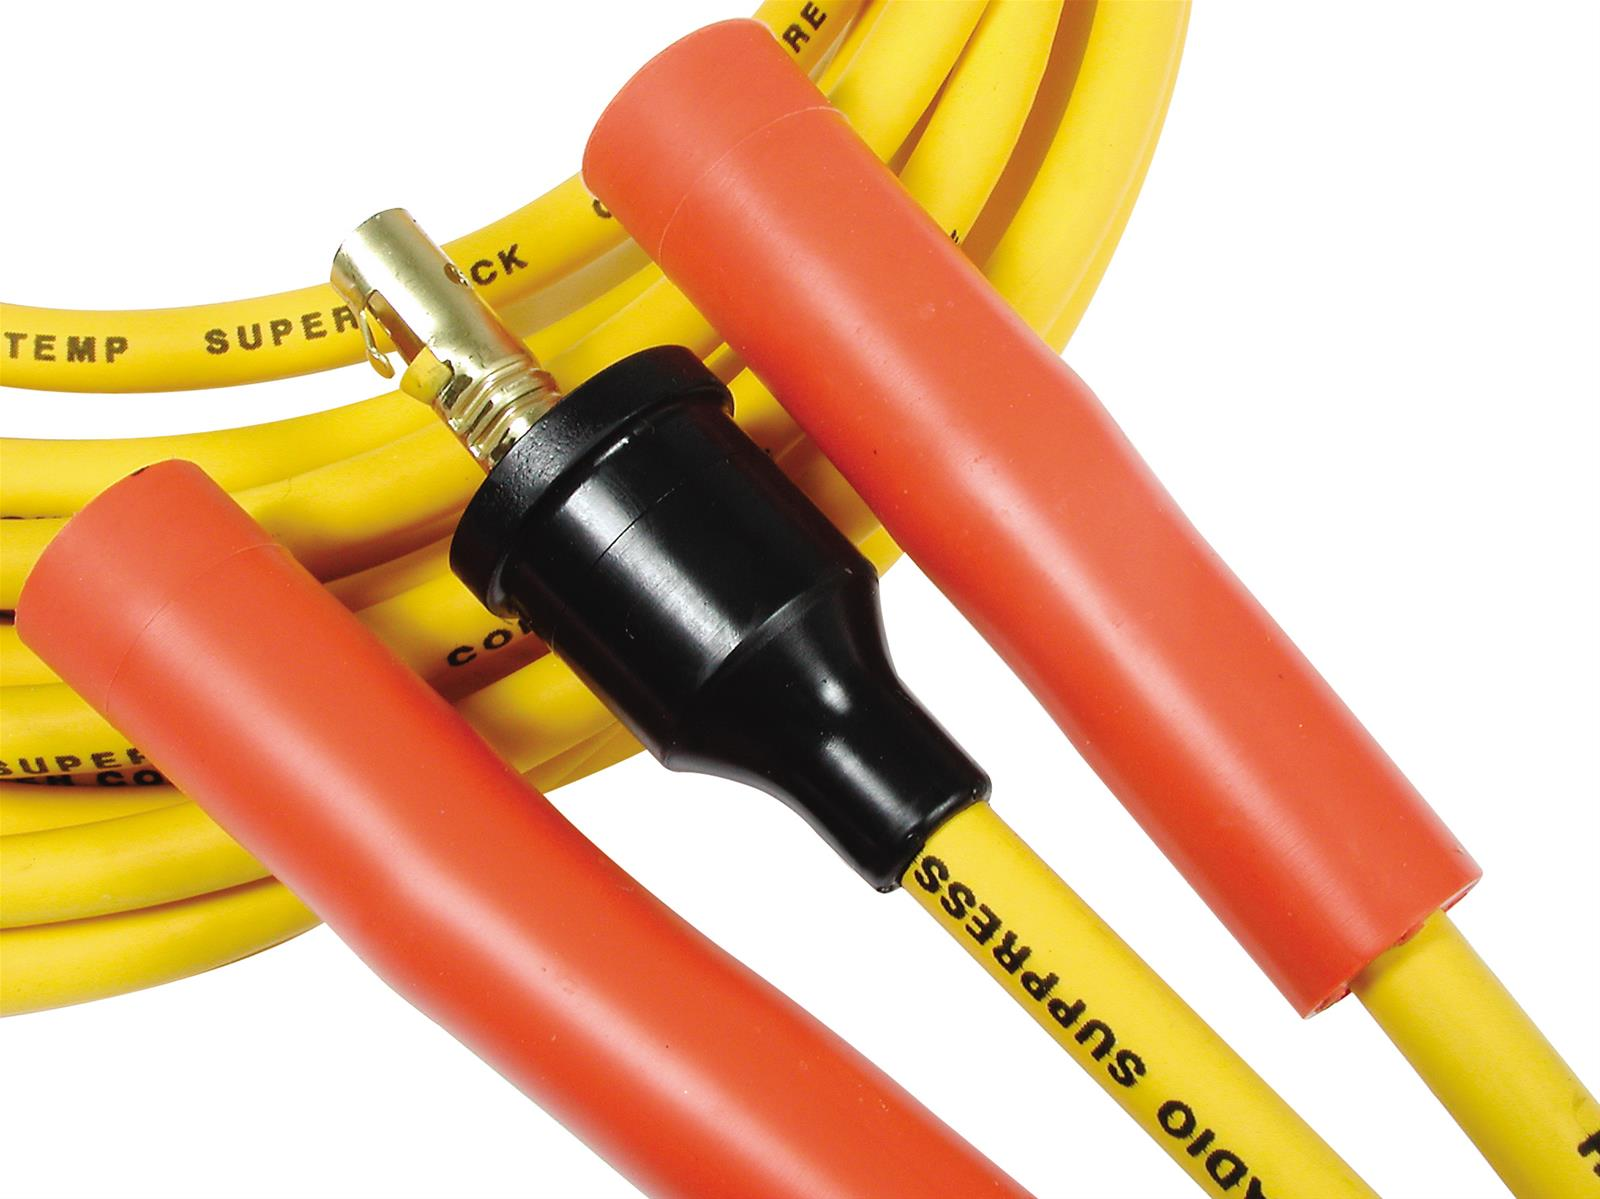 Accel Spark Plug Wires Super Stock 8mm Yellow Straight Boots Gm Hei Wiring Universal V8 Set 743047006825 Ebay